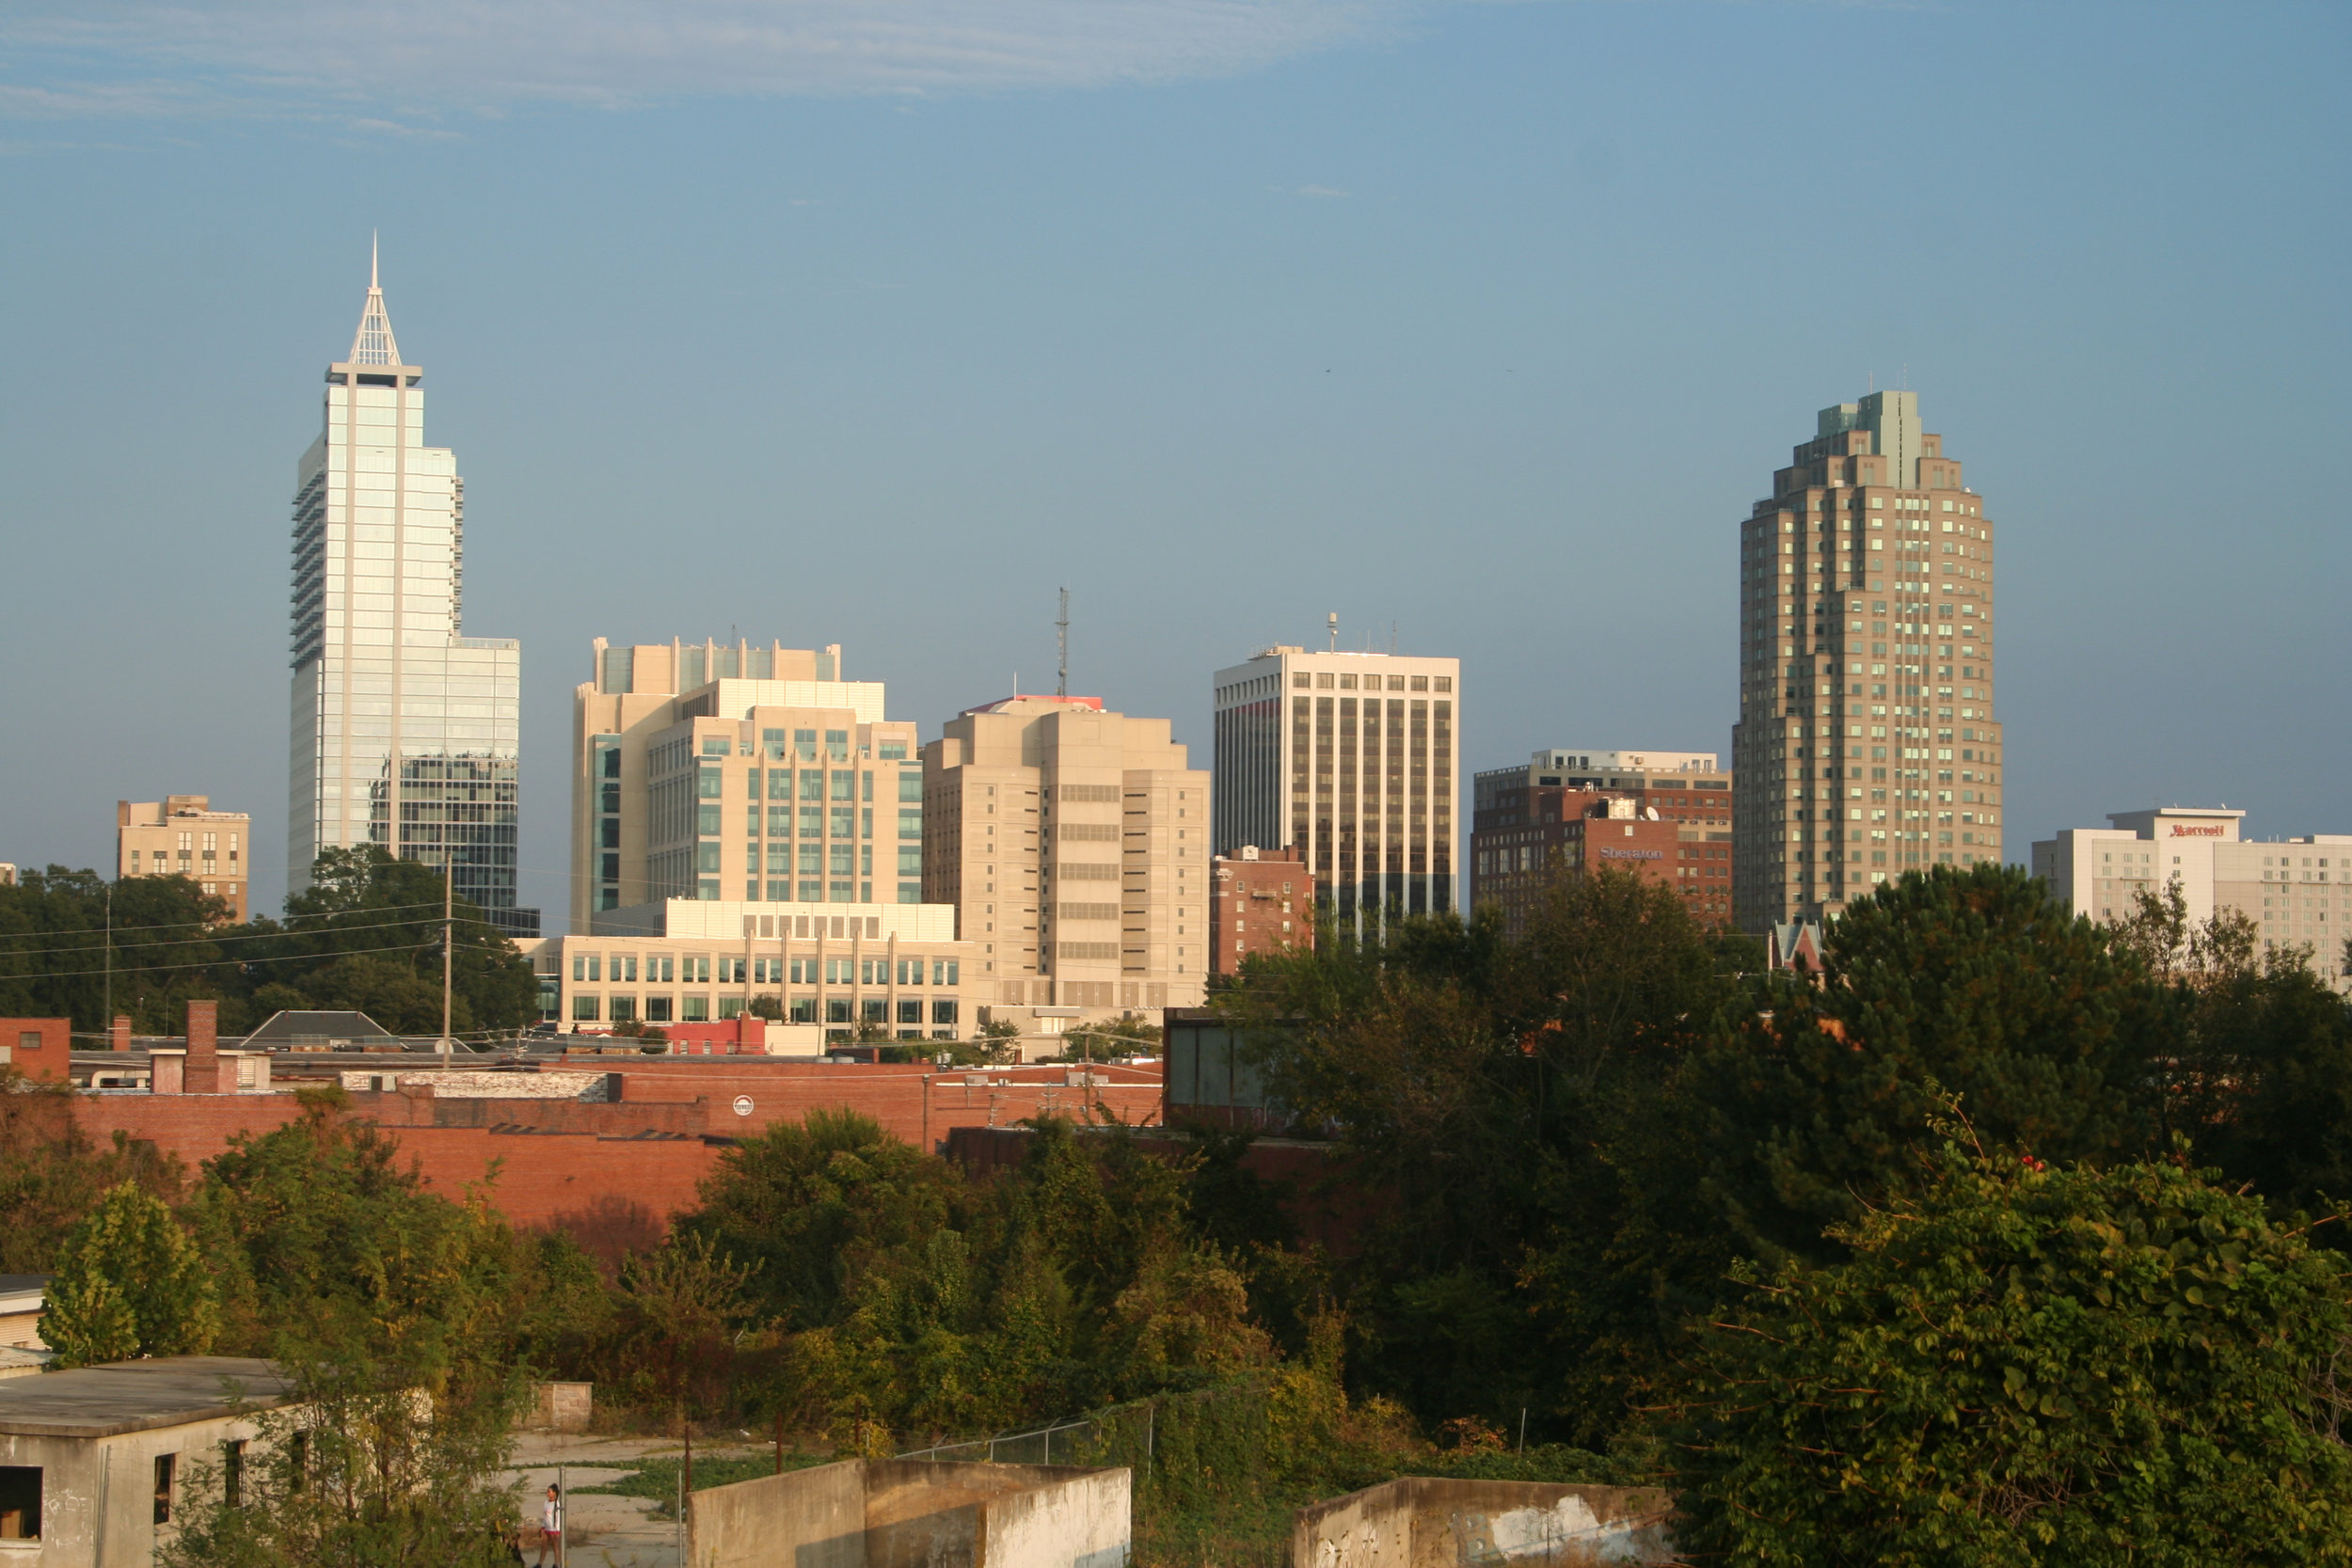 The Raleigh, NC, USA skyline: The largely suburban development pattern of Raleigh creates a thermal mosaic (see below), providing a built-in study system in which trees that are close together (<200 m) experience different thermal conditions.